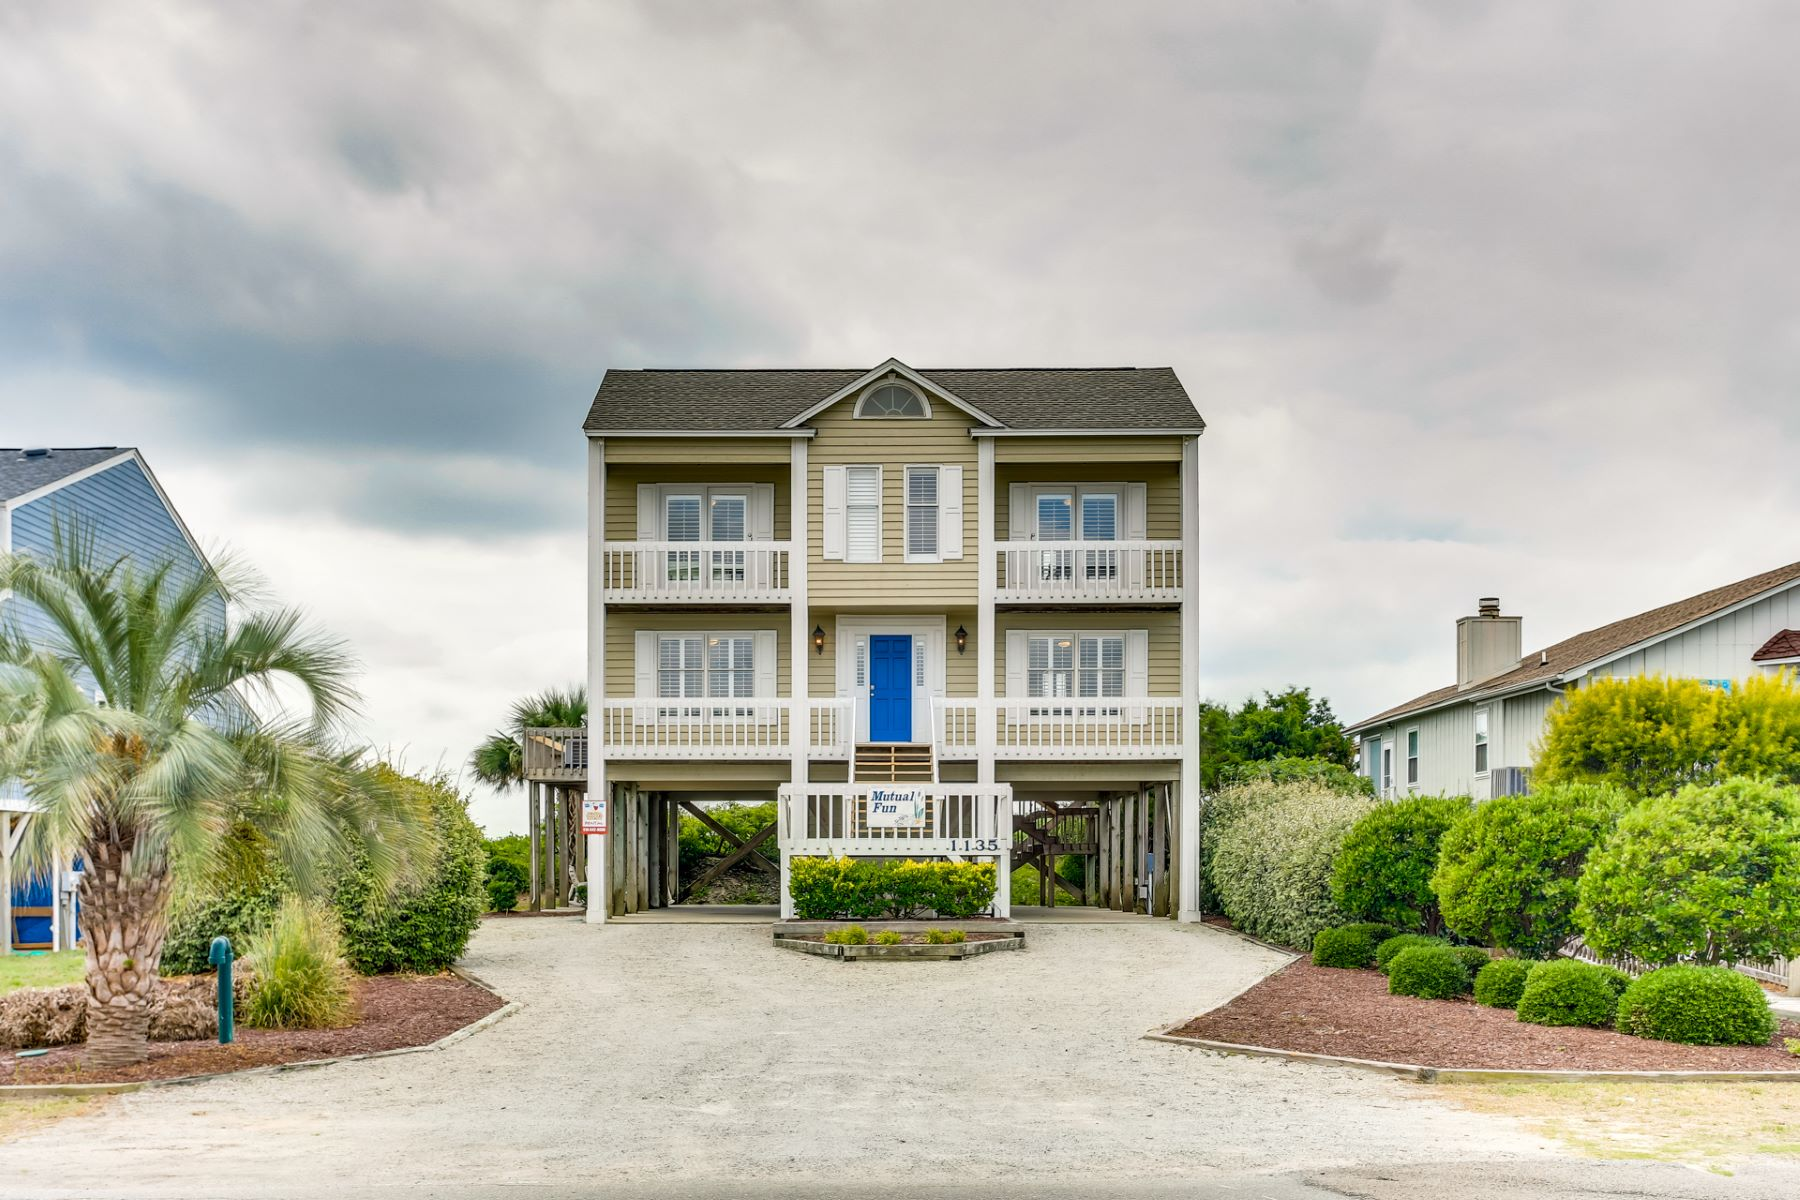 Single Family Homes for Active at Remodeled Oceanfront Homes 1135 Ocean Blvd W Holden Beach, North Carolina 28462 United States